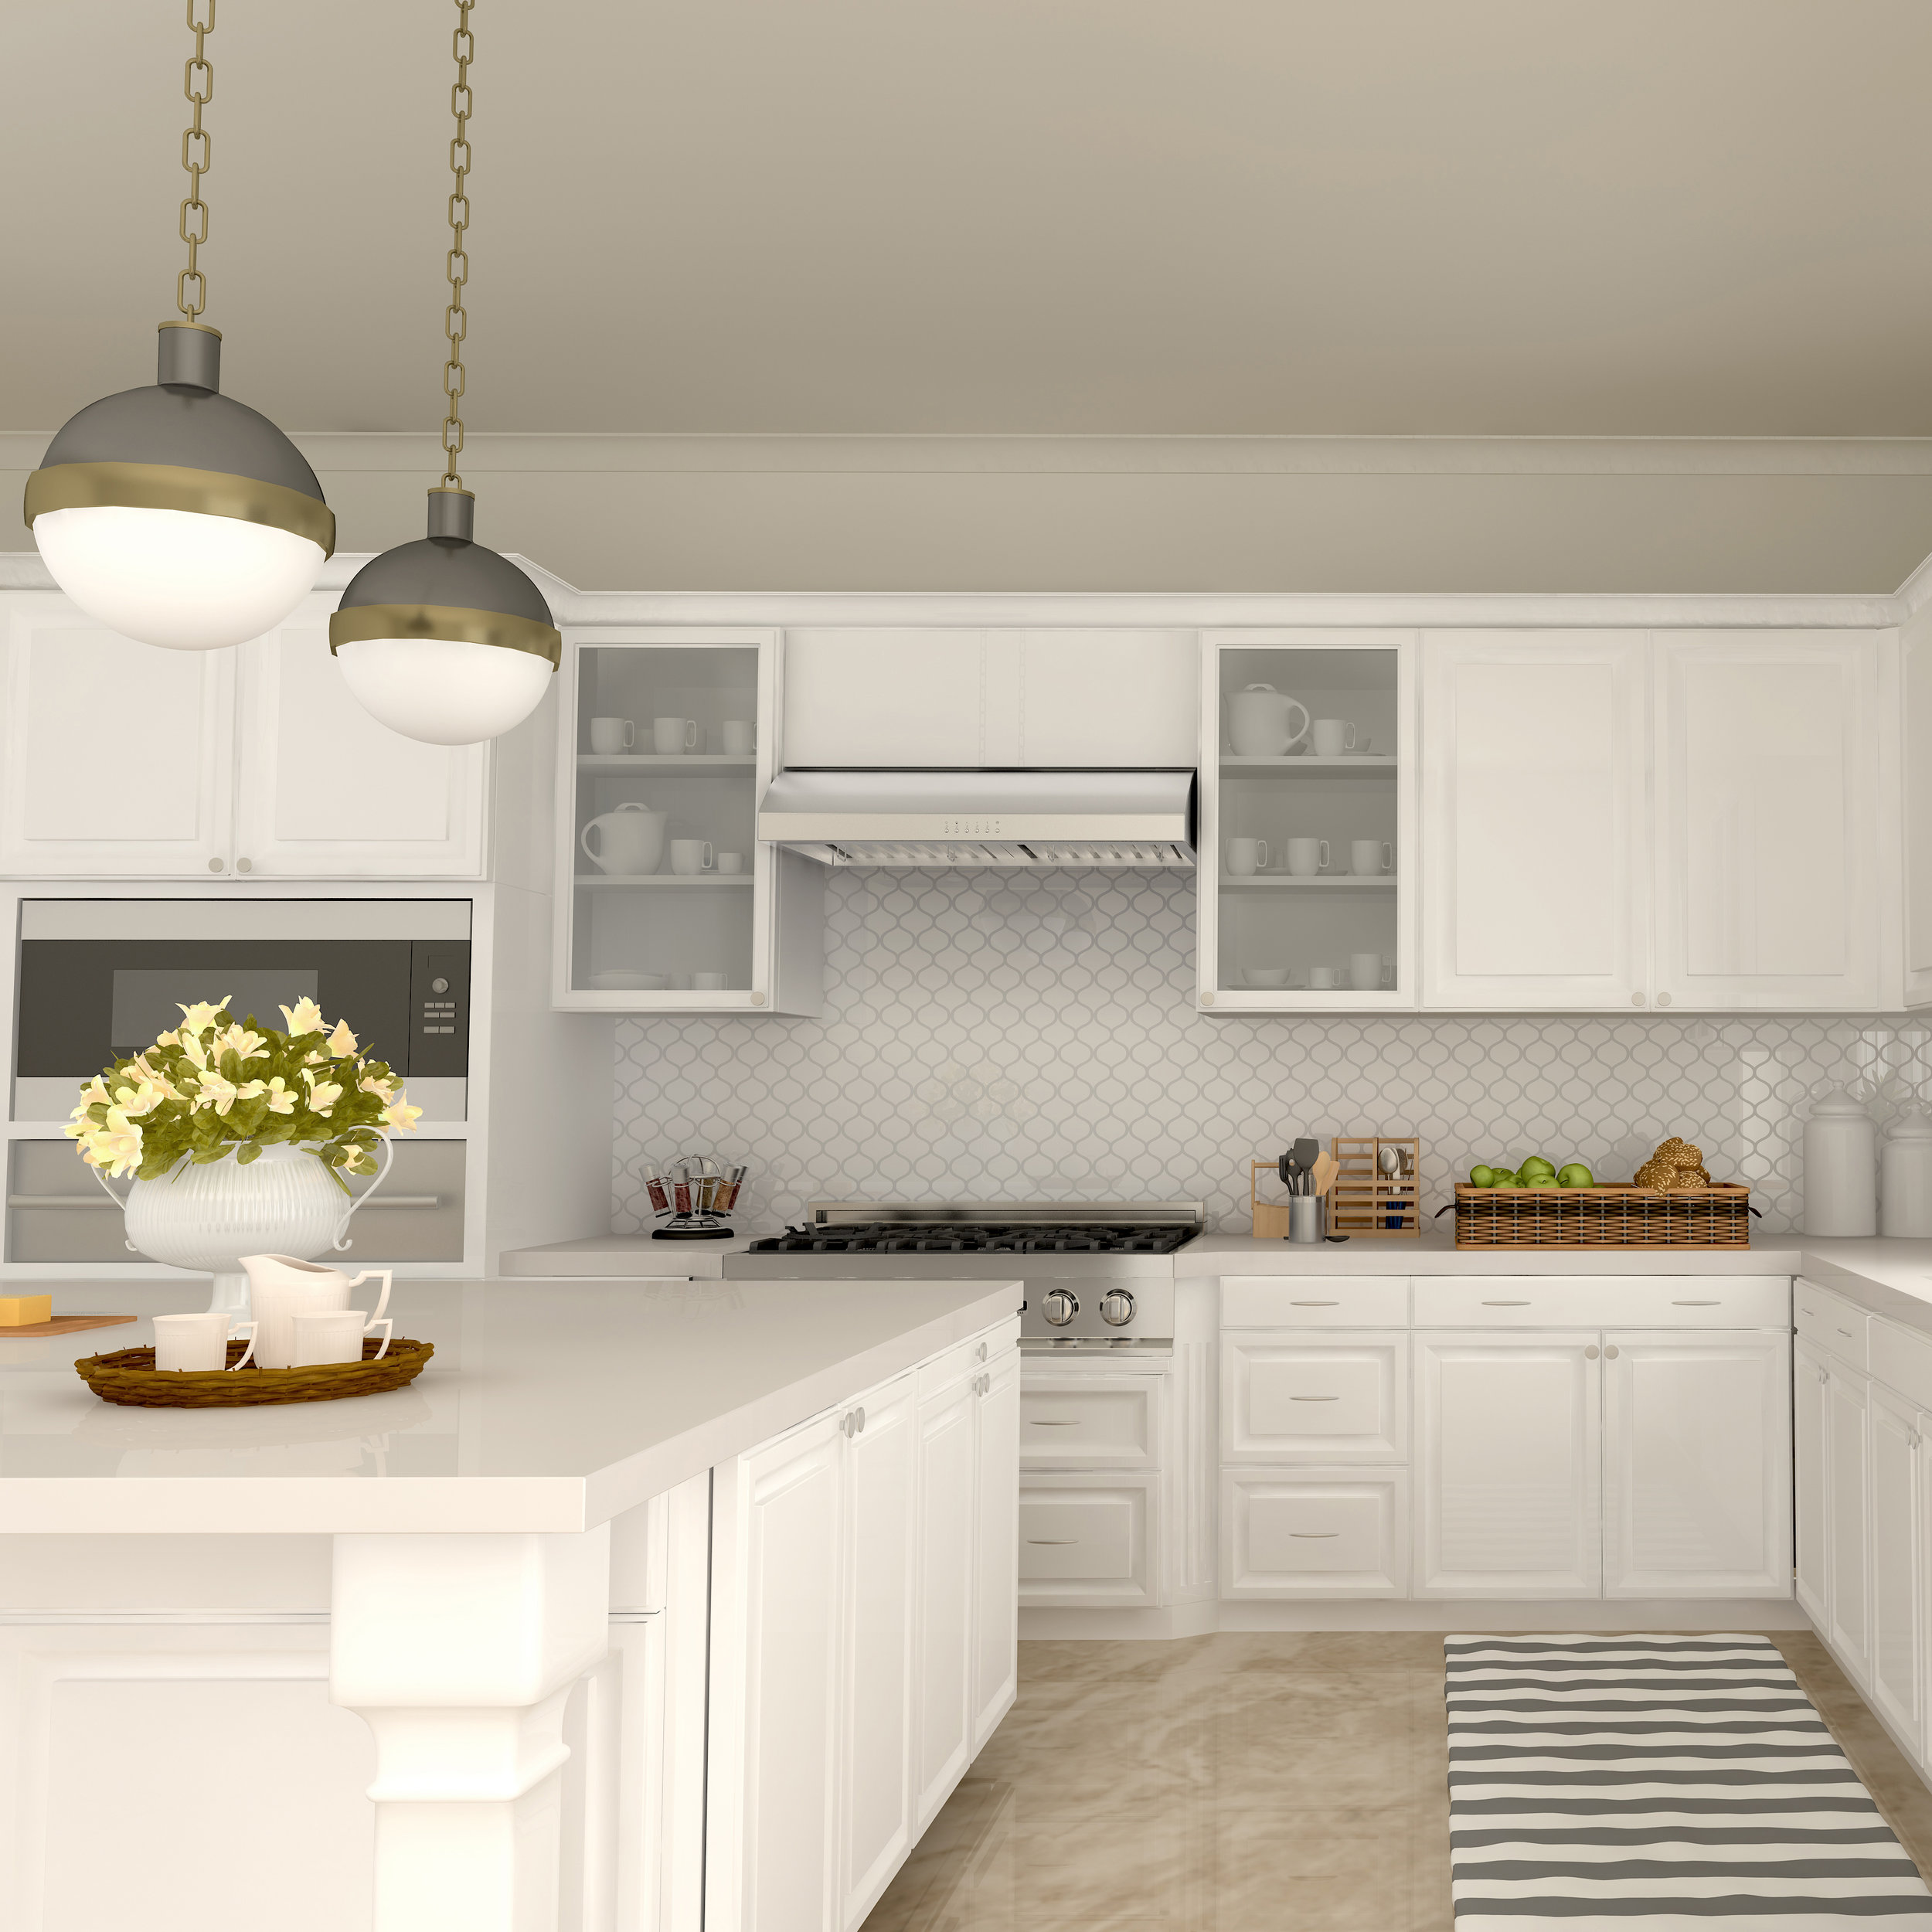 zline-stainless-steel-under-cabinet-range-hood-627-kitchen-updated.jpg